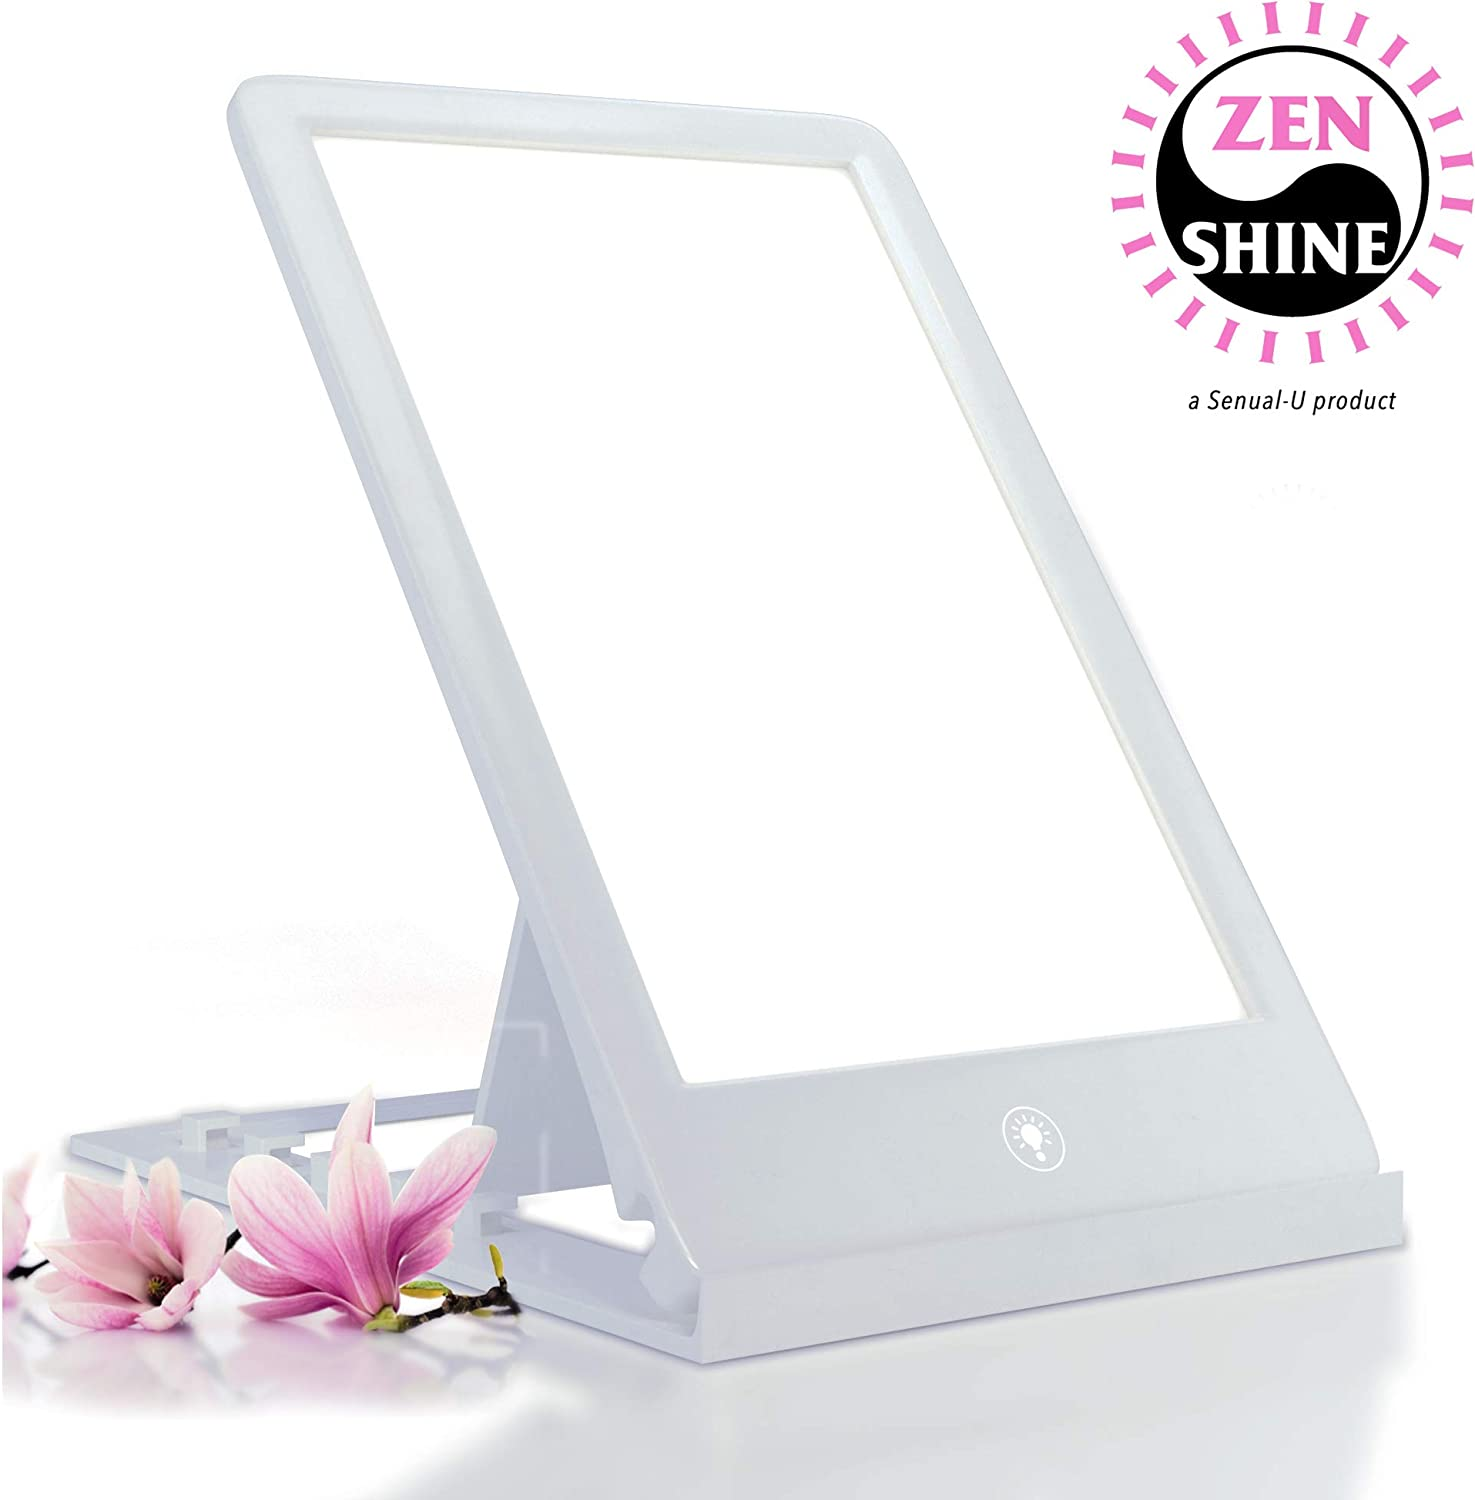 ZenShine Portable Light Therapy Energy Lamp, Daylight Full Spectrum Light Lamp, 10000 LUX Adjustable LED Light, Tablet One Touch, 100 UV Free by Sensual-U